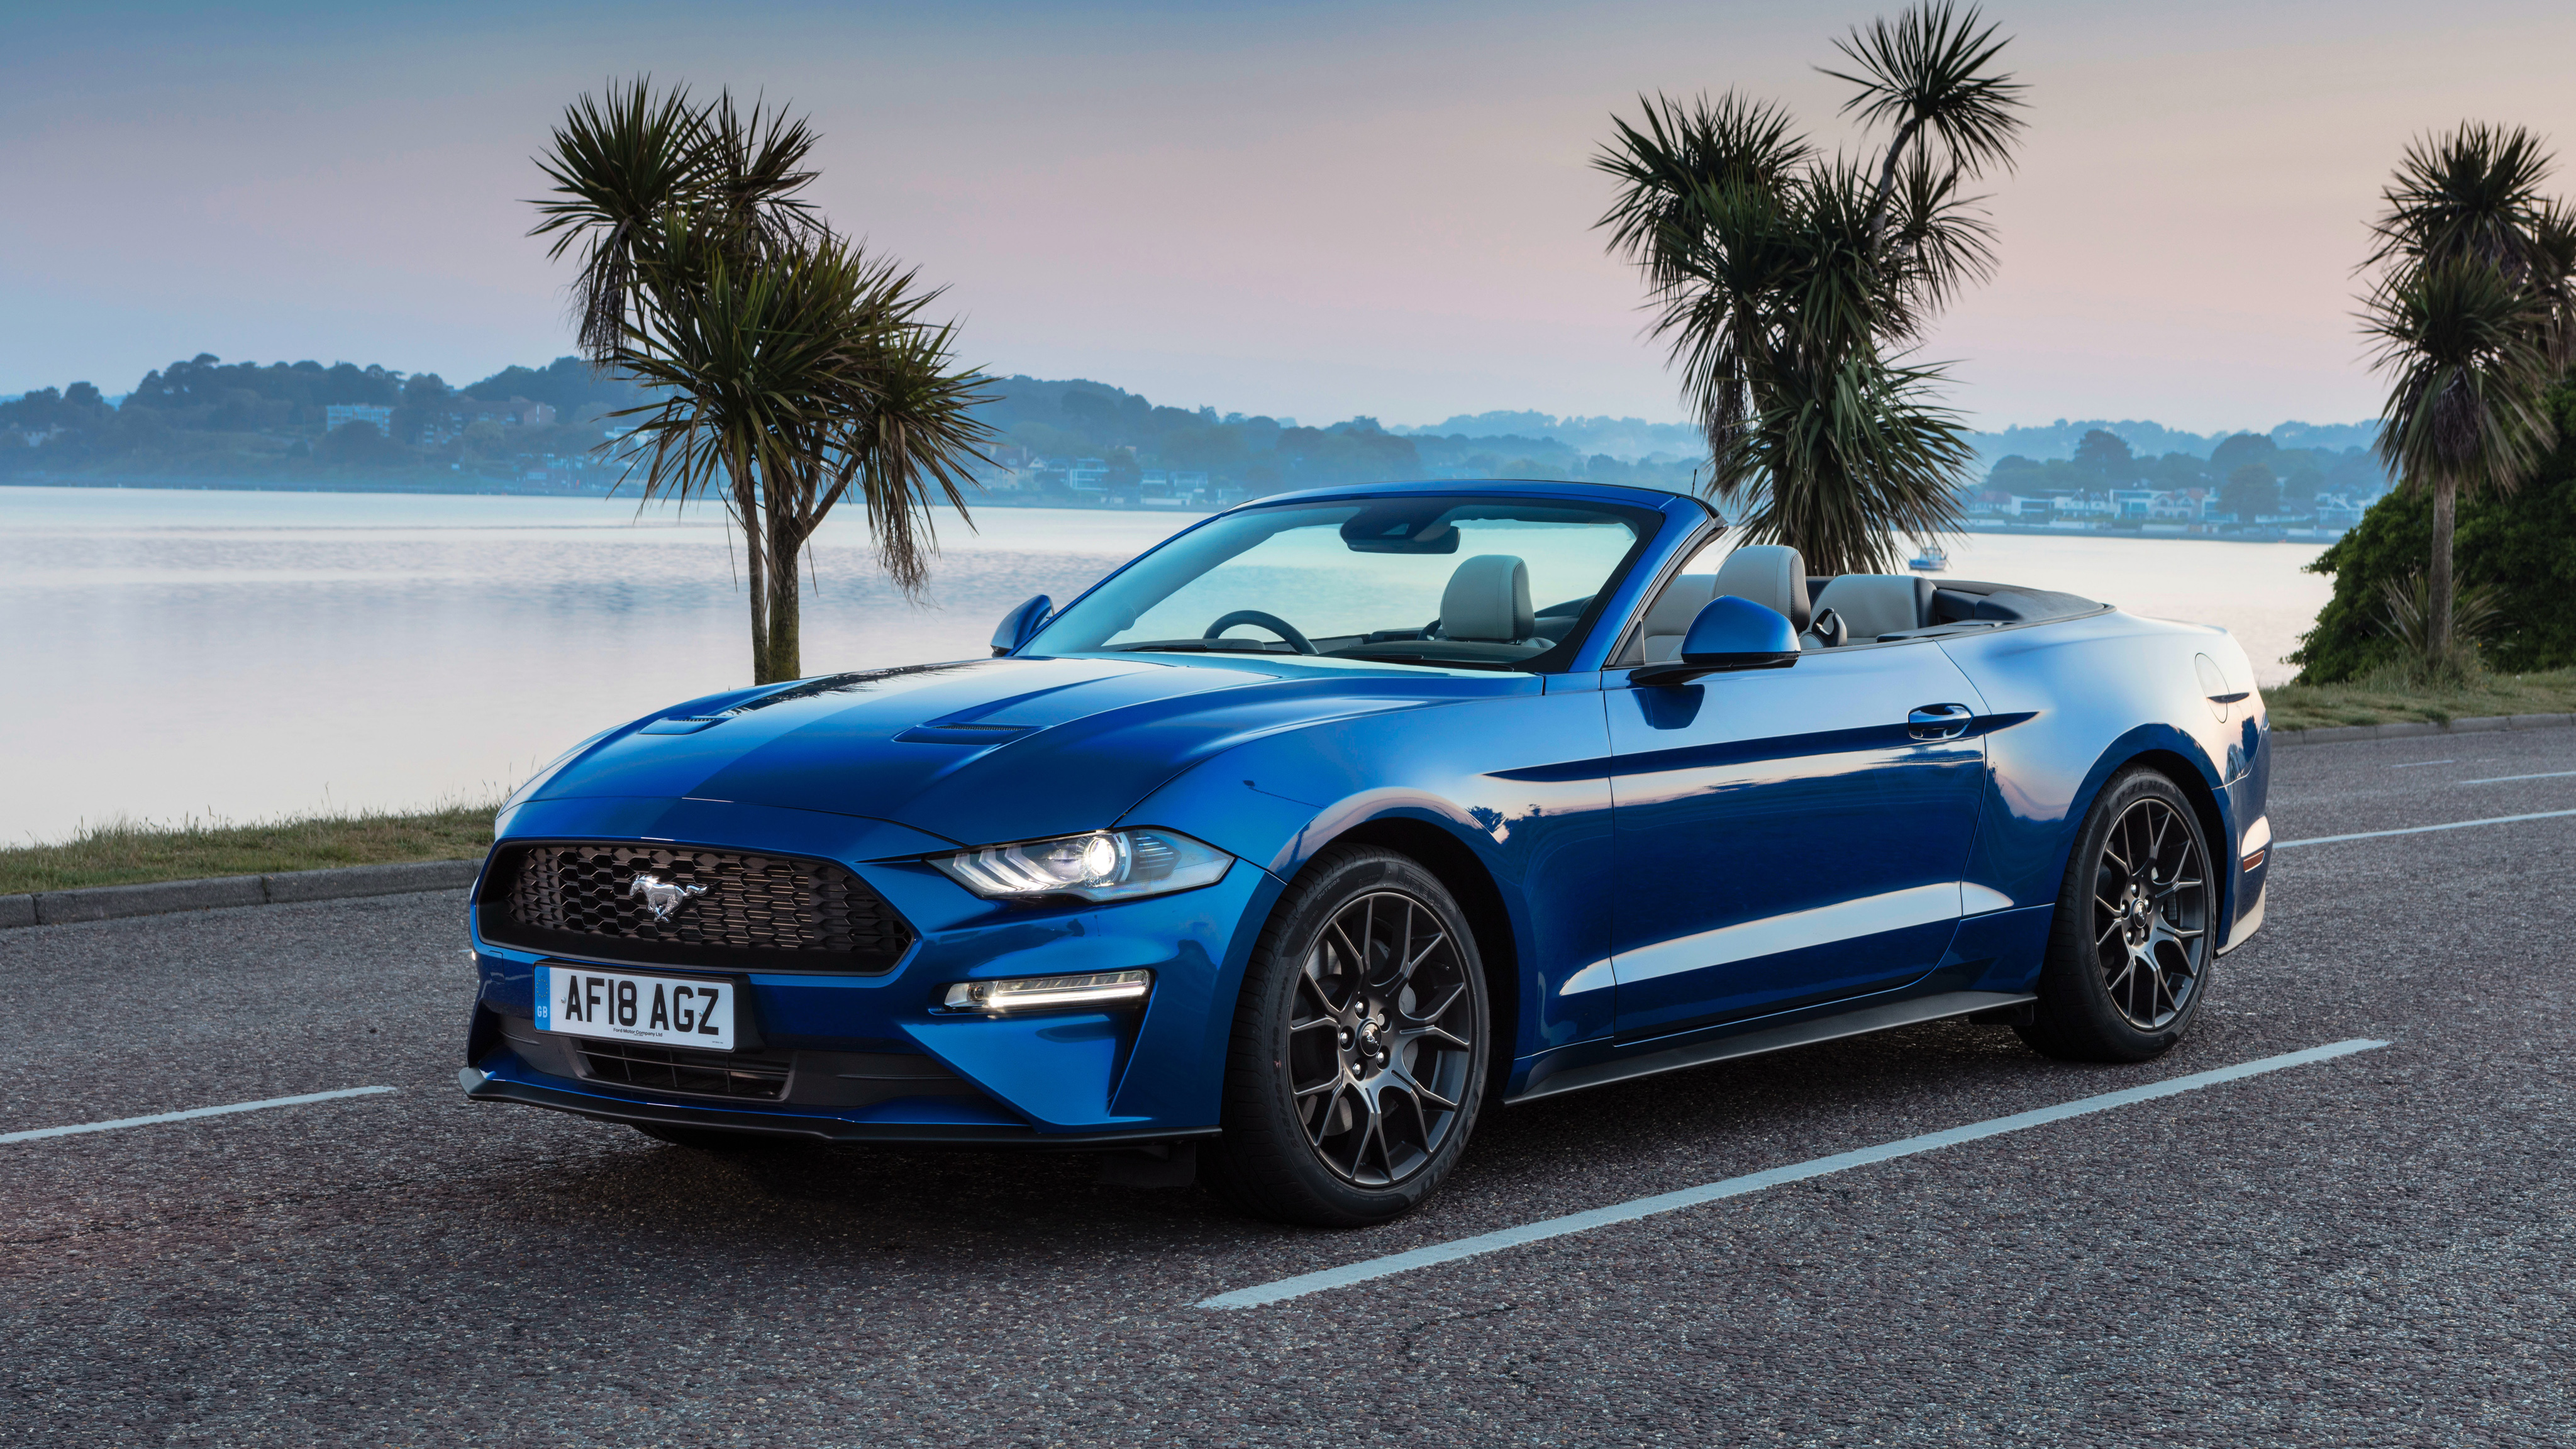 4096x2304 - Ford Convertible Wallpapers 31